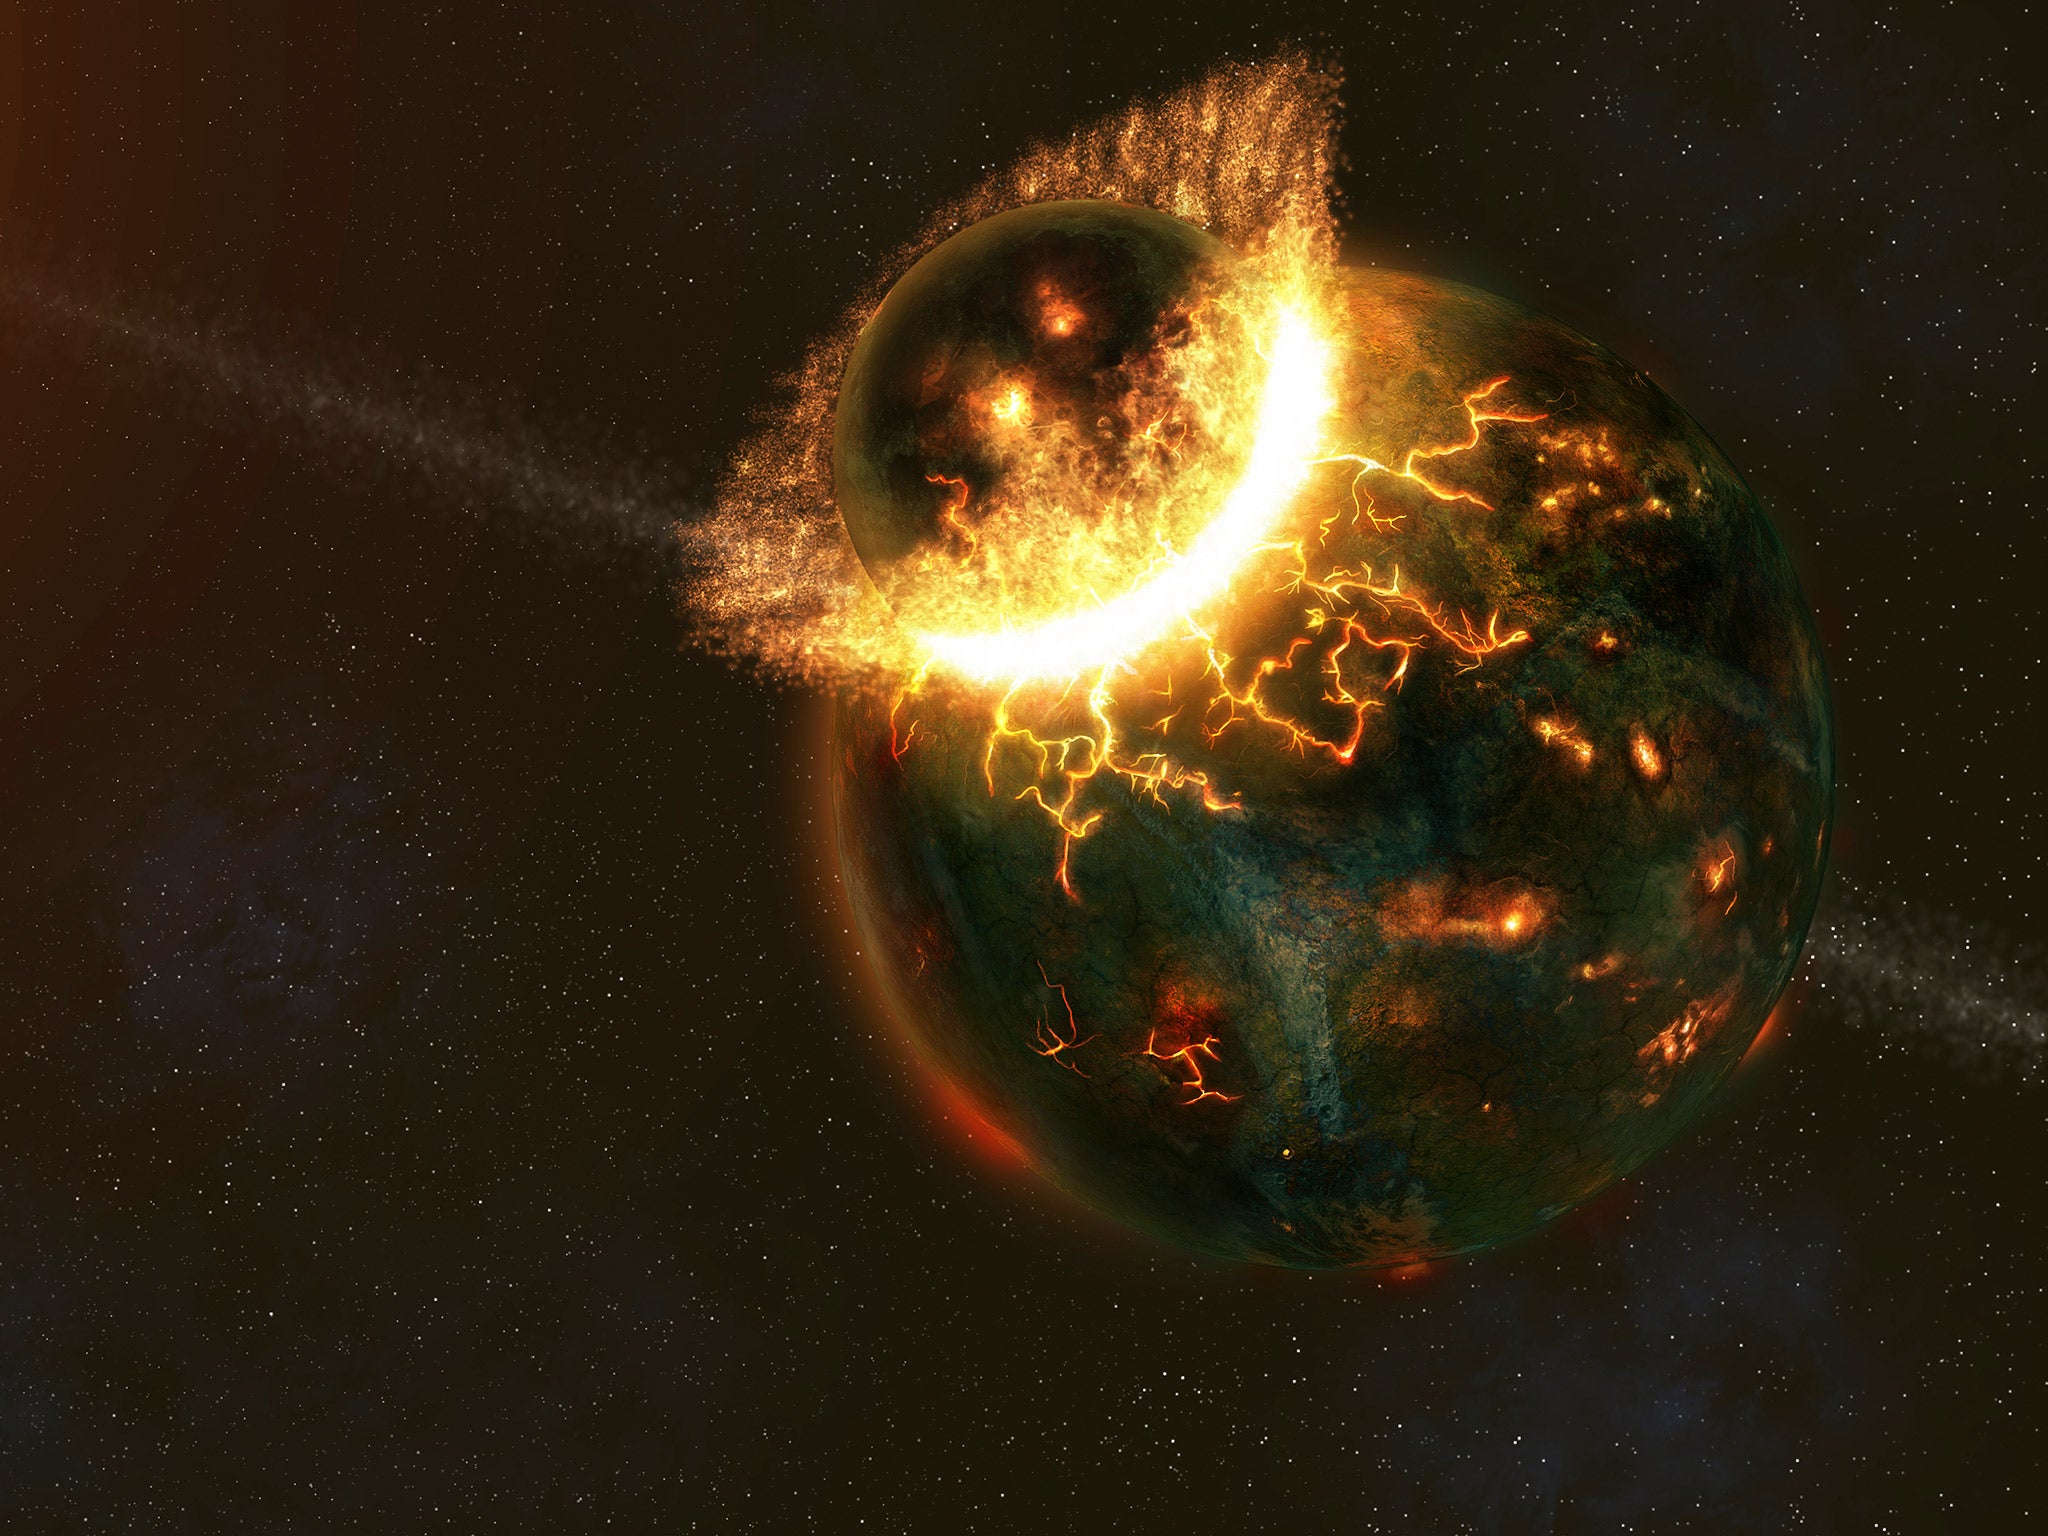 Earth's collision with a Mercury-like planet may have been ...